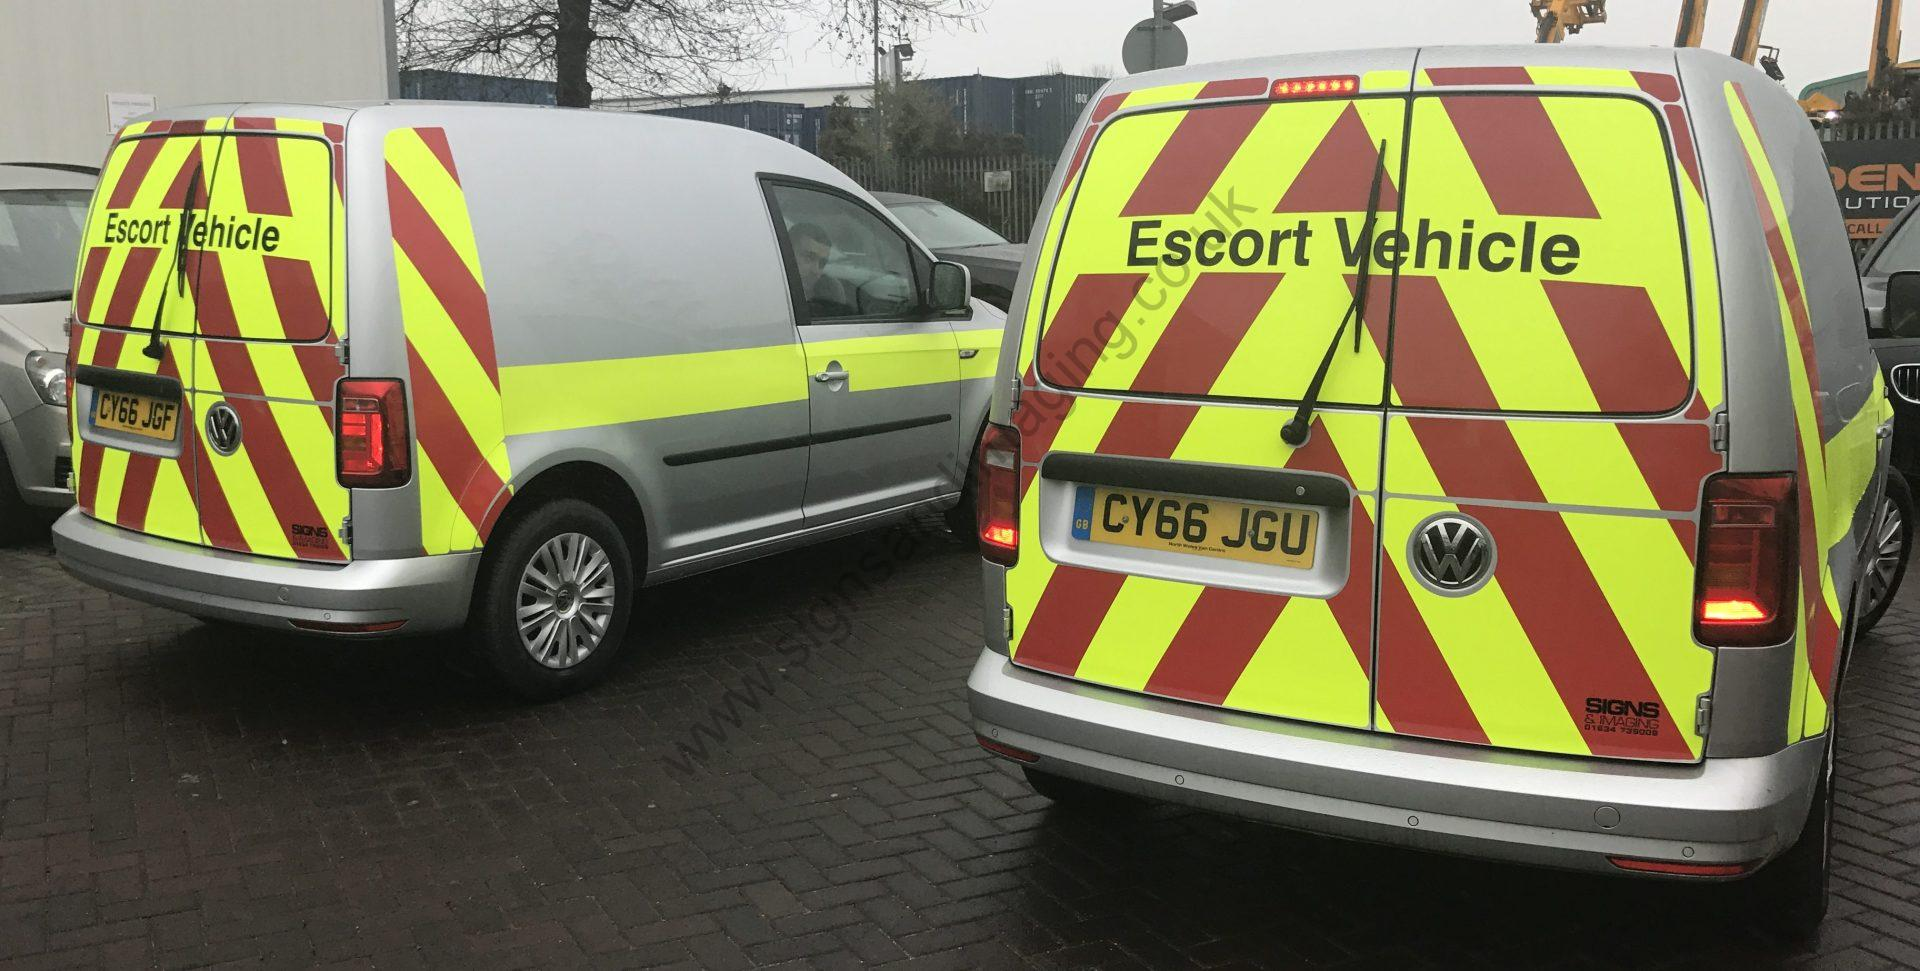 Escort Vehicles Rochester Now Compliant Signs And Imaging